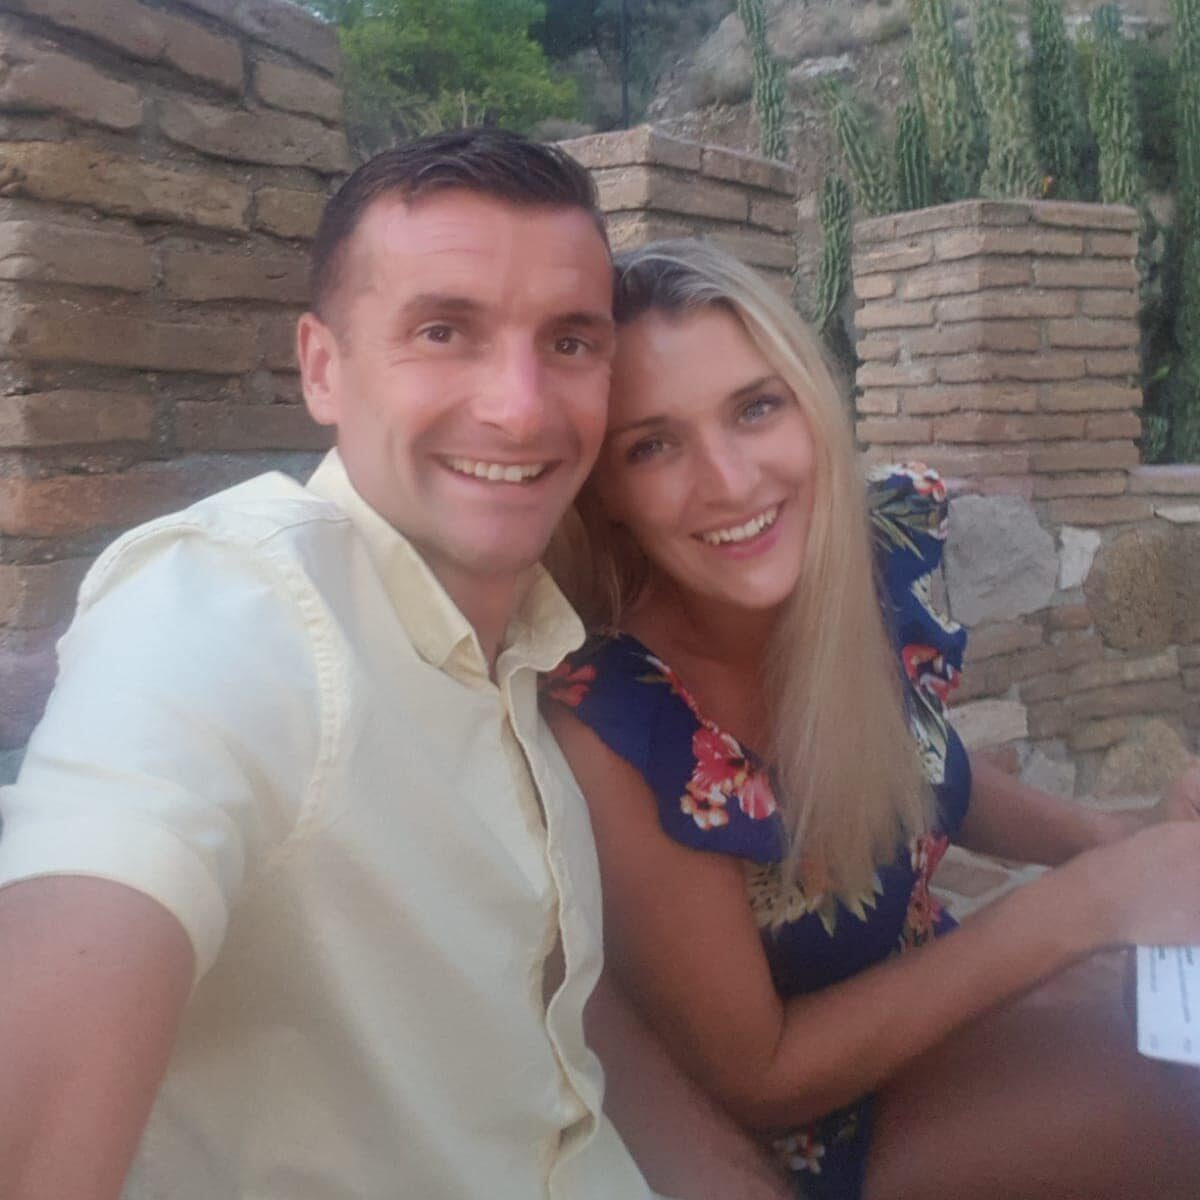 Luke and kay selfie picture on holiday in Greece